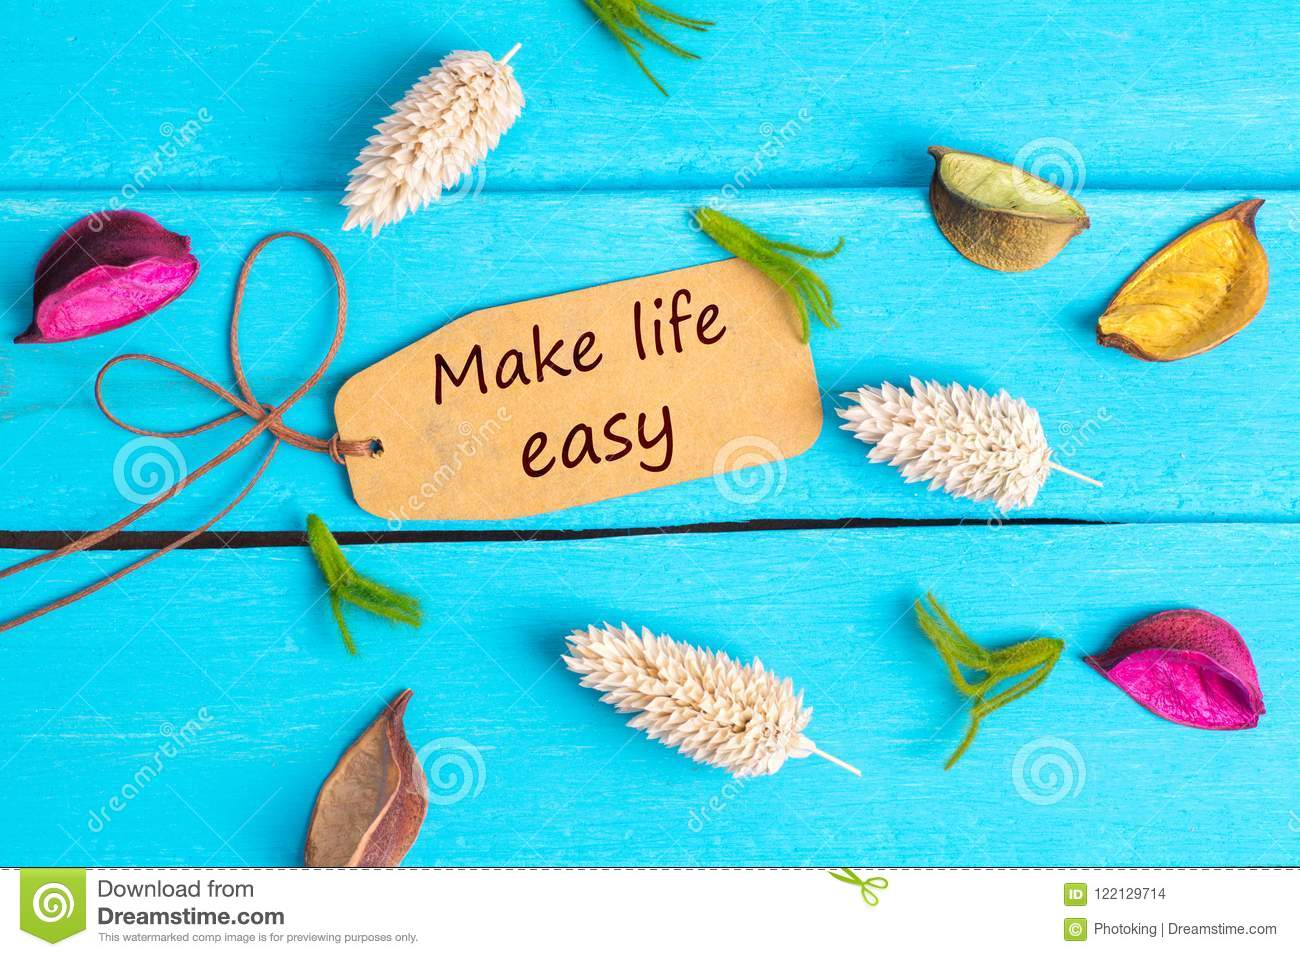 Make life easy text on paper tag